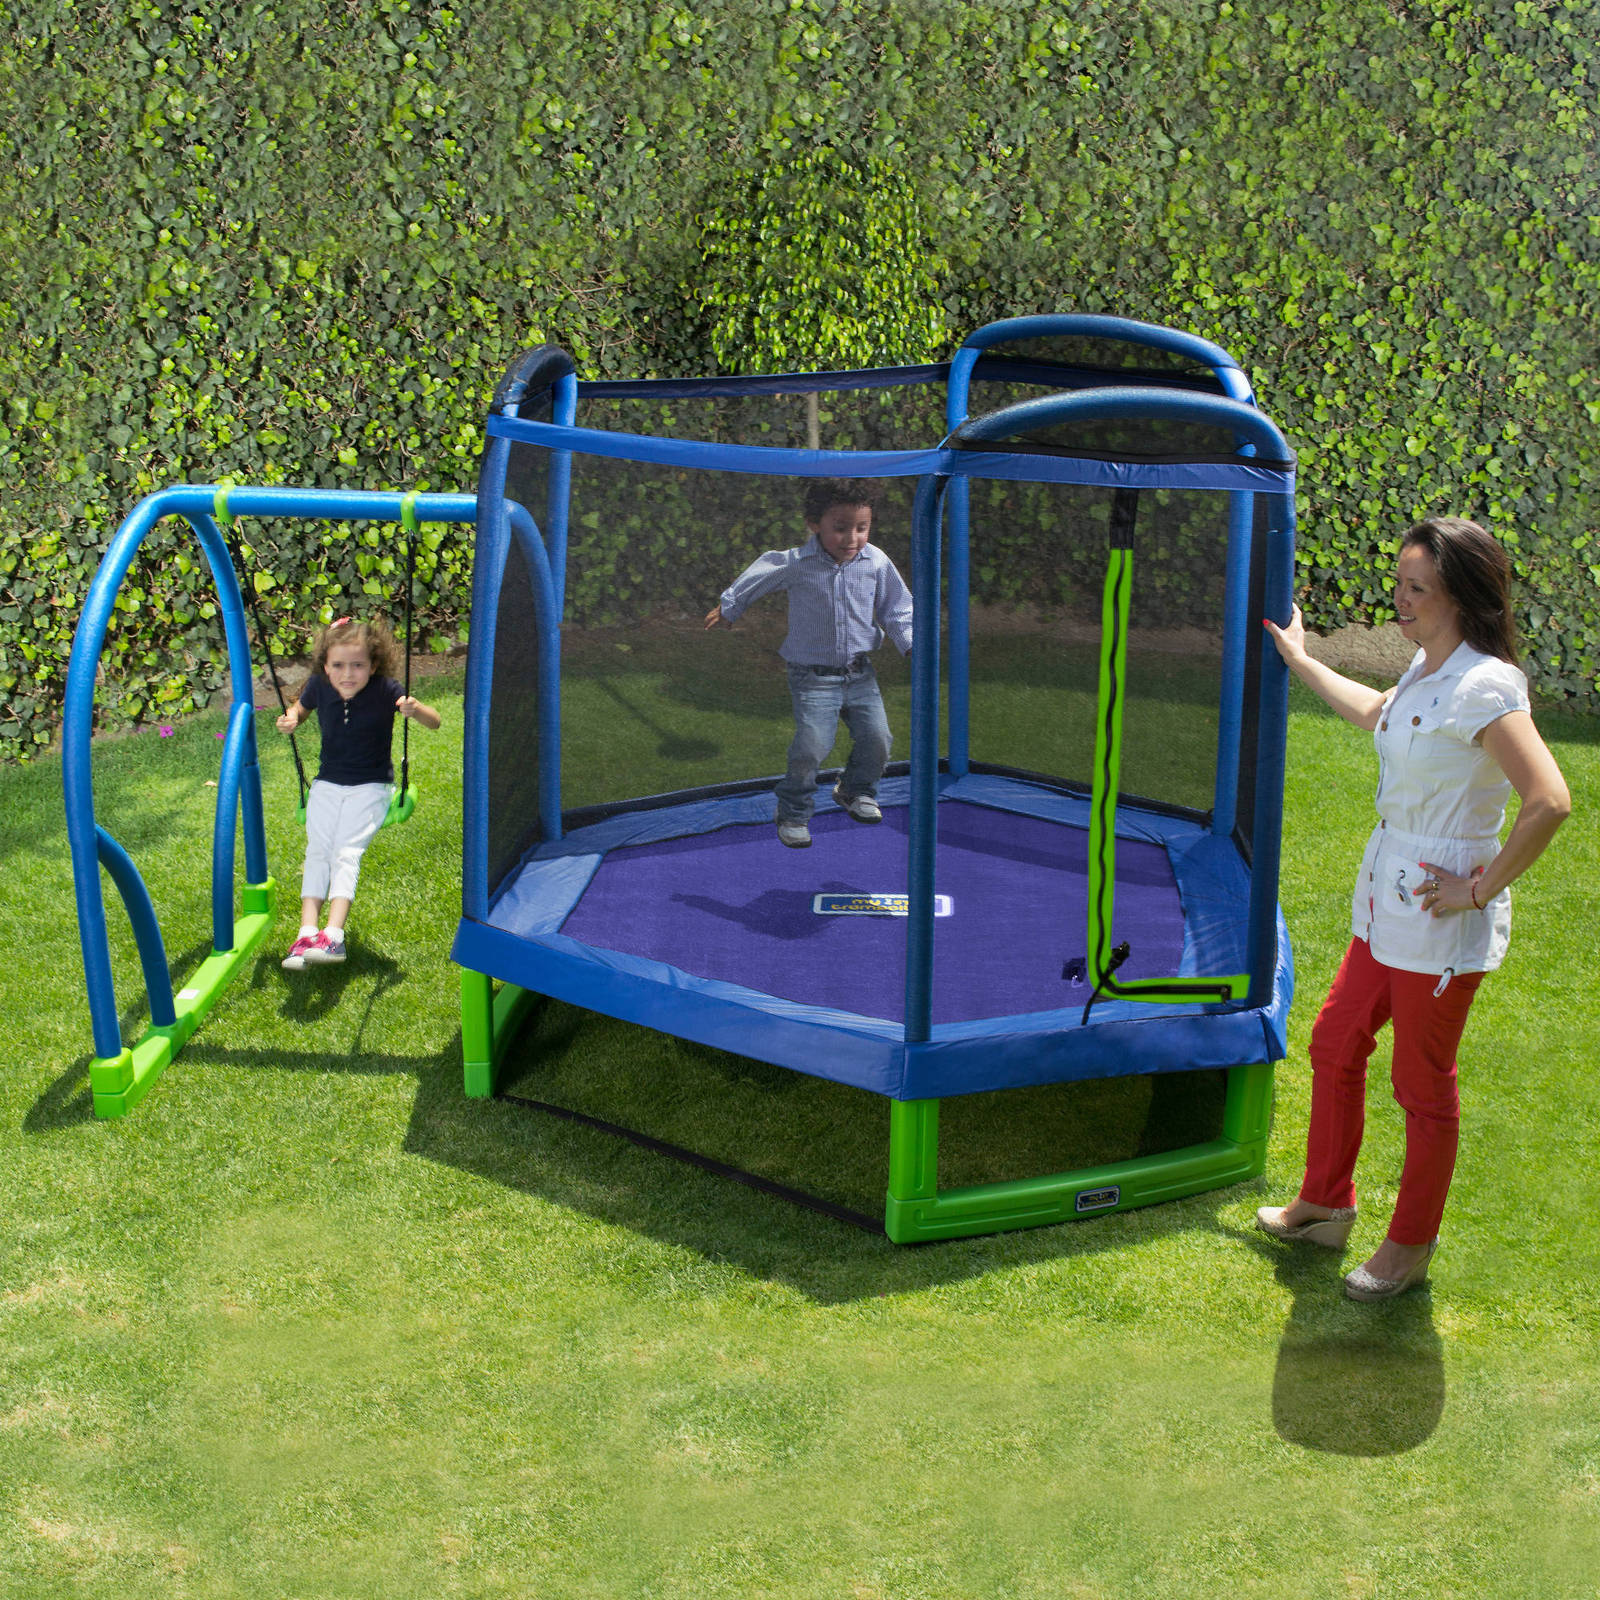 Trampoline Parts Center Coupon Code: Swing Set Trampoline Outdoor Playground Play Swingset